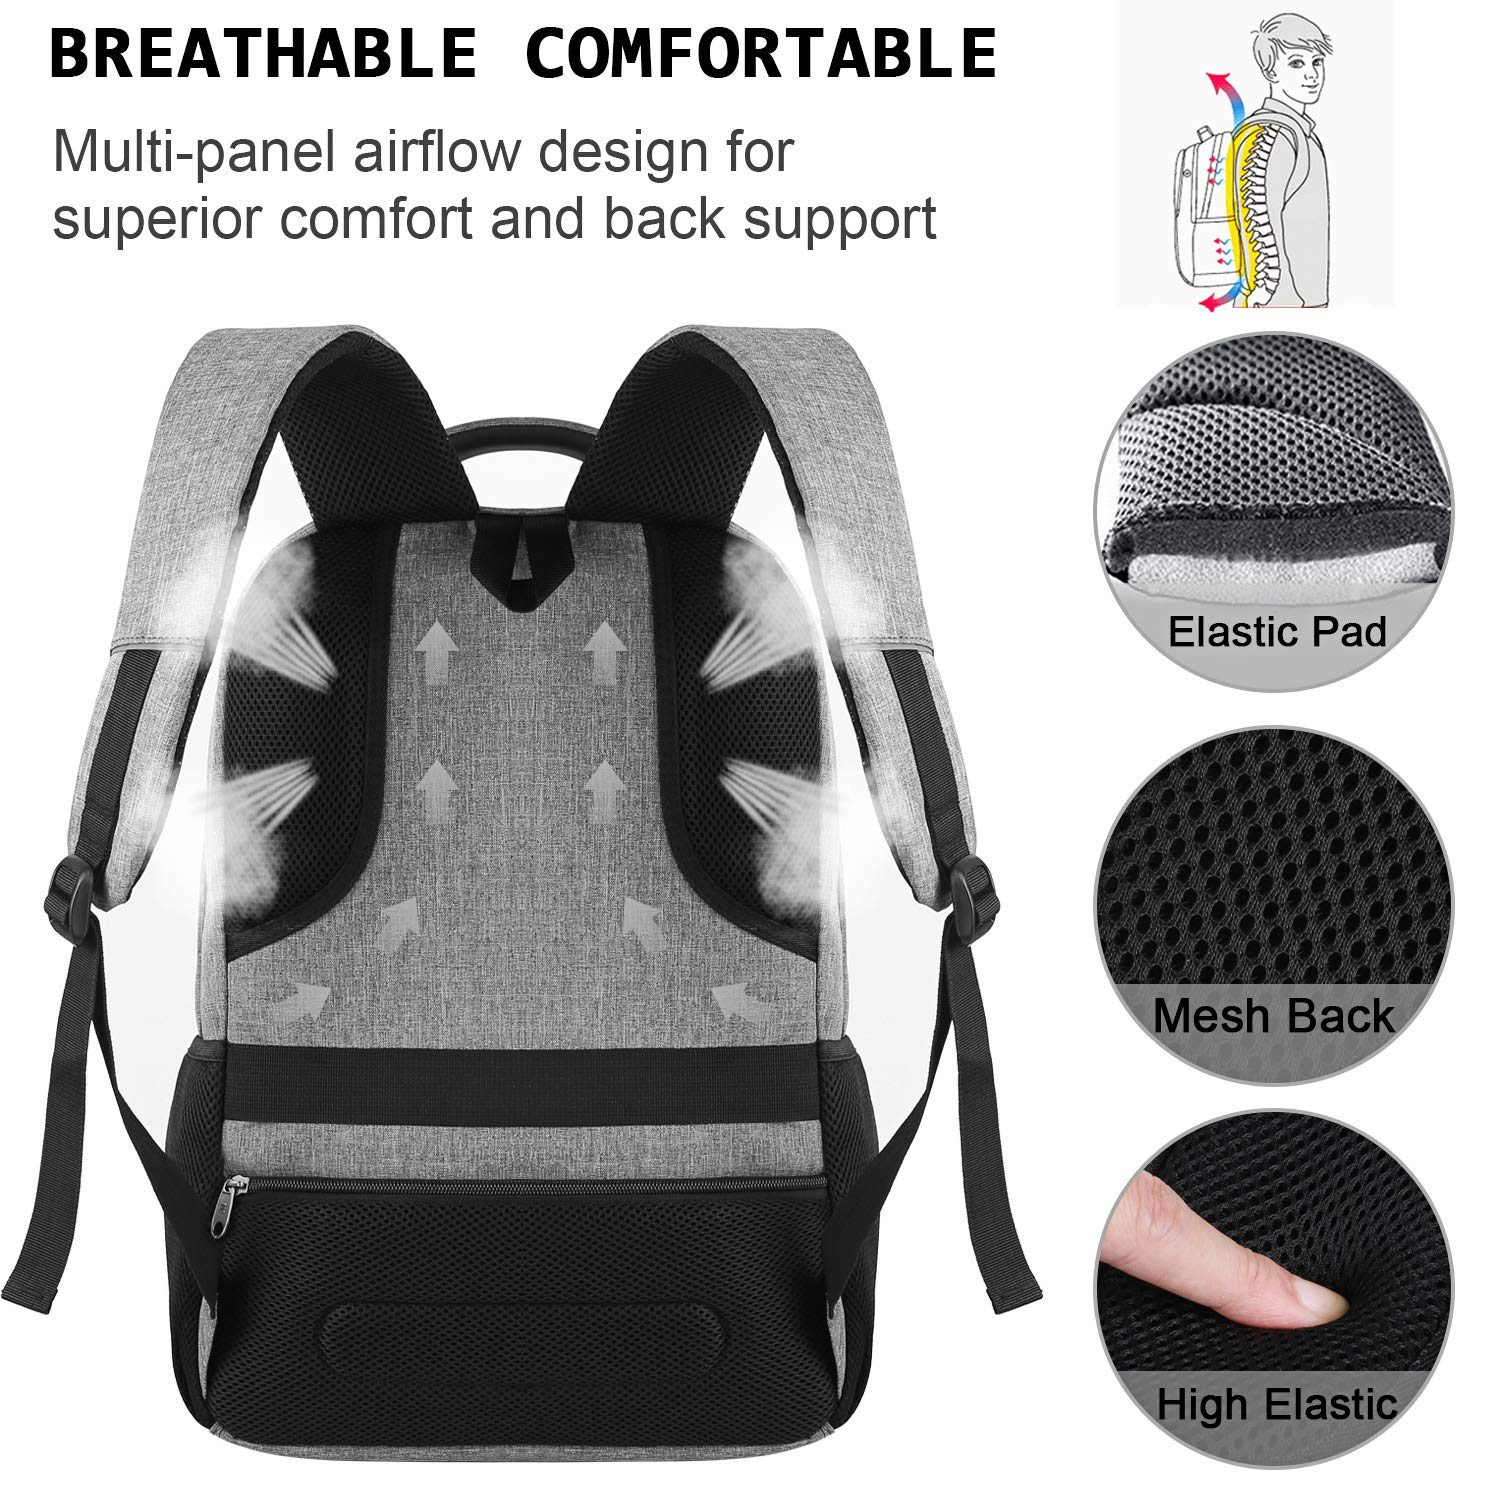 Grey Laptop Backpack,Business Travel Anti Theft Slim Durable Laptops Backpack with USB Charging Port,Water Resistant College School Computer Bag for Women /& Men Fits 15.6 Inch Laptop and Notebook